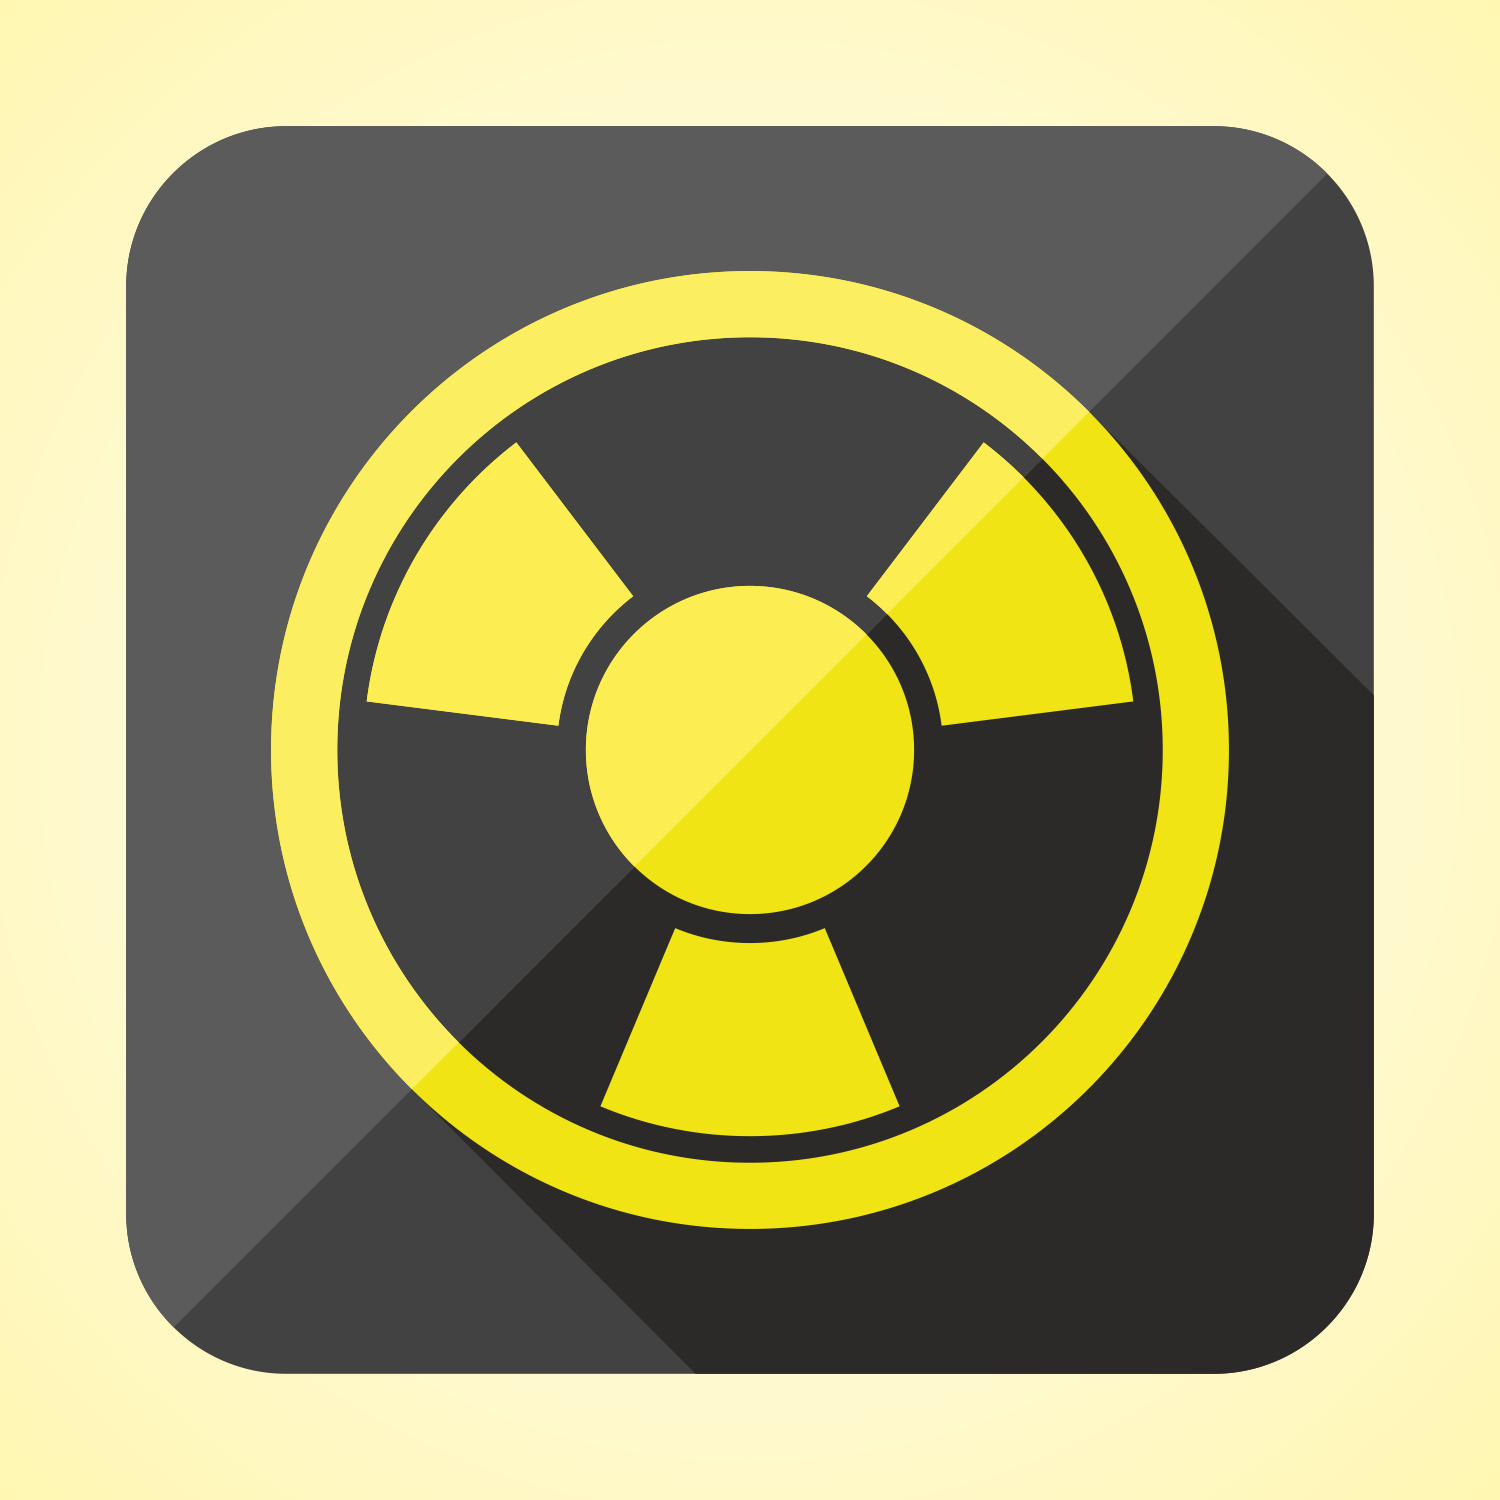 Flat radioactivity icon or button